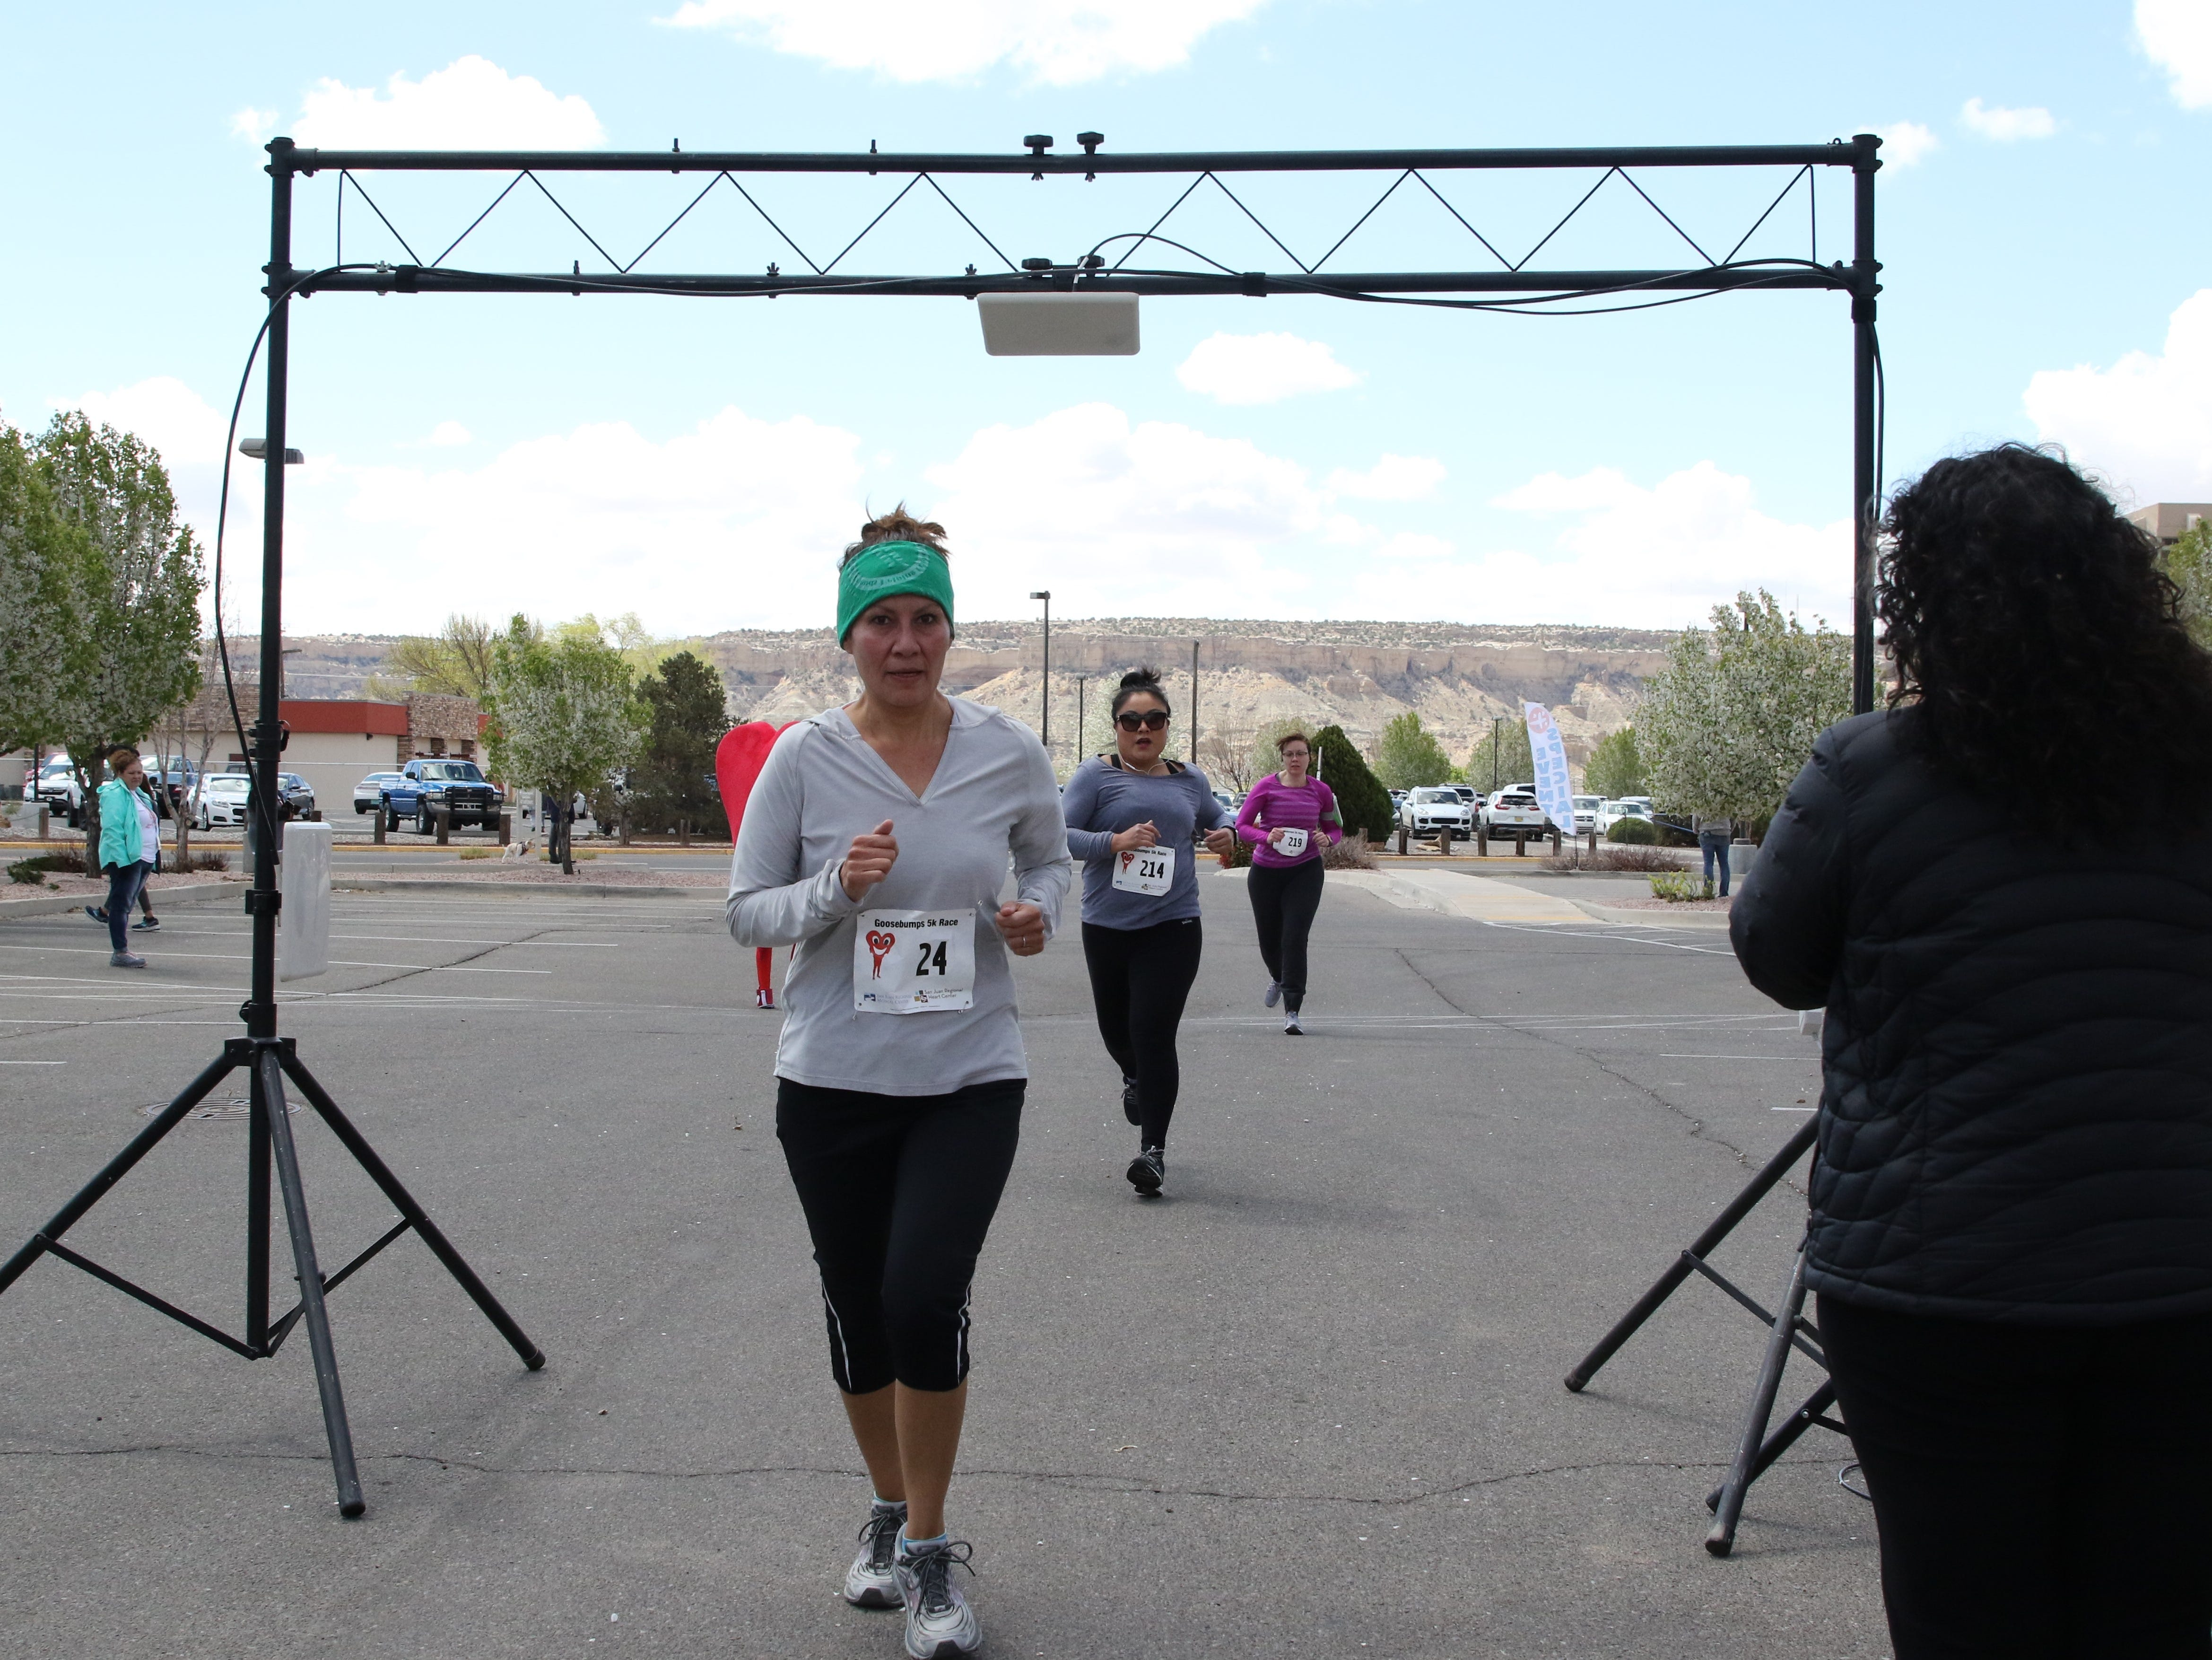 A trio of runners finish the 5K race for the 11th annual A Fair of the Heart and Goosebump Race on Saturday in Farmington.